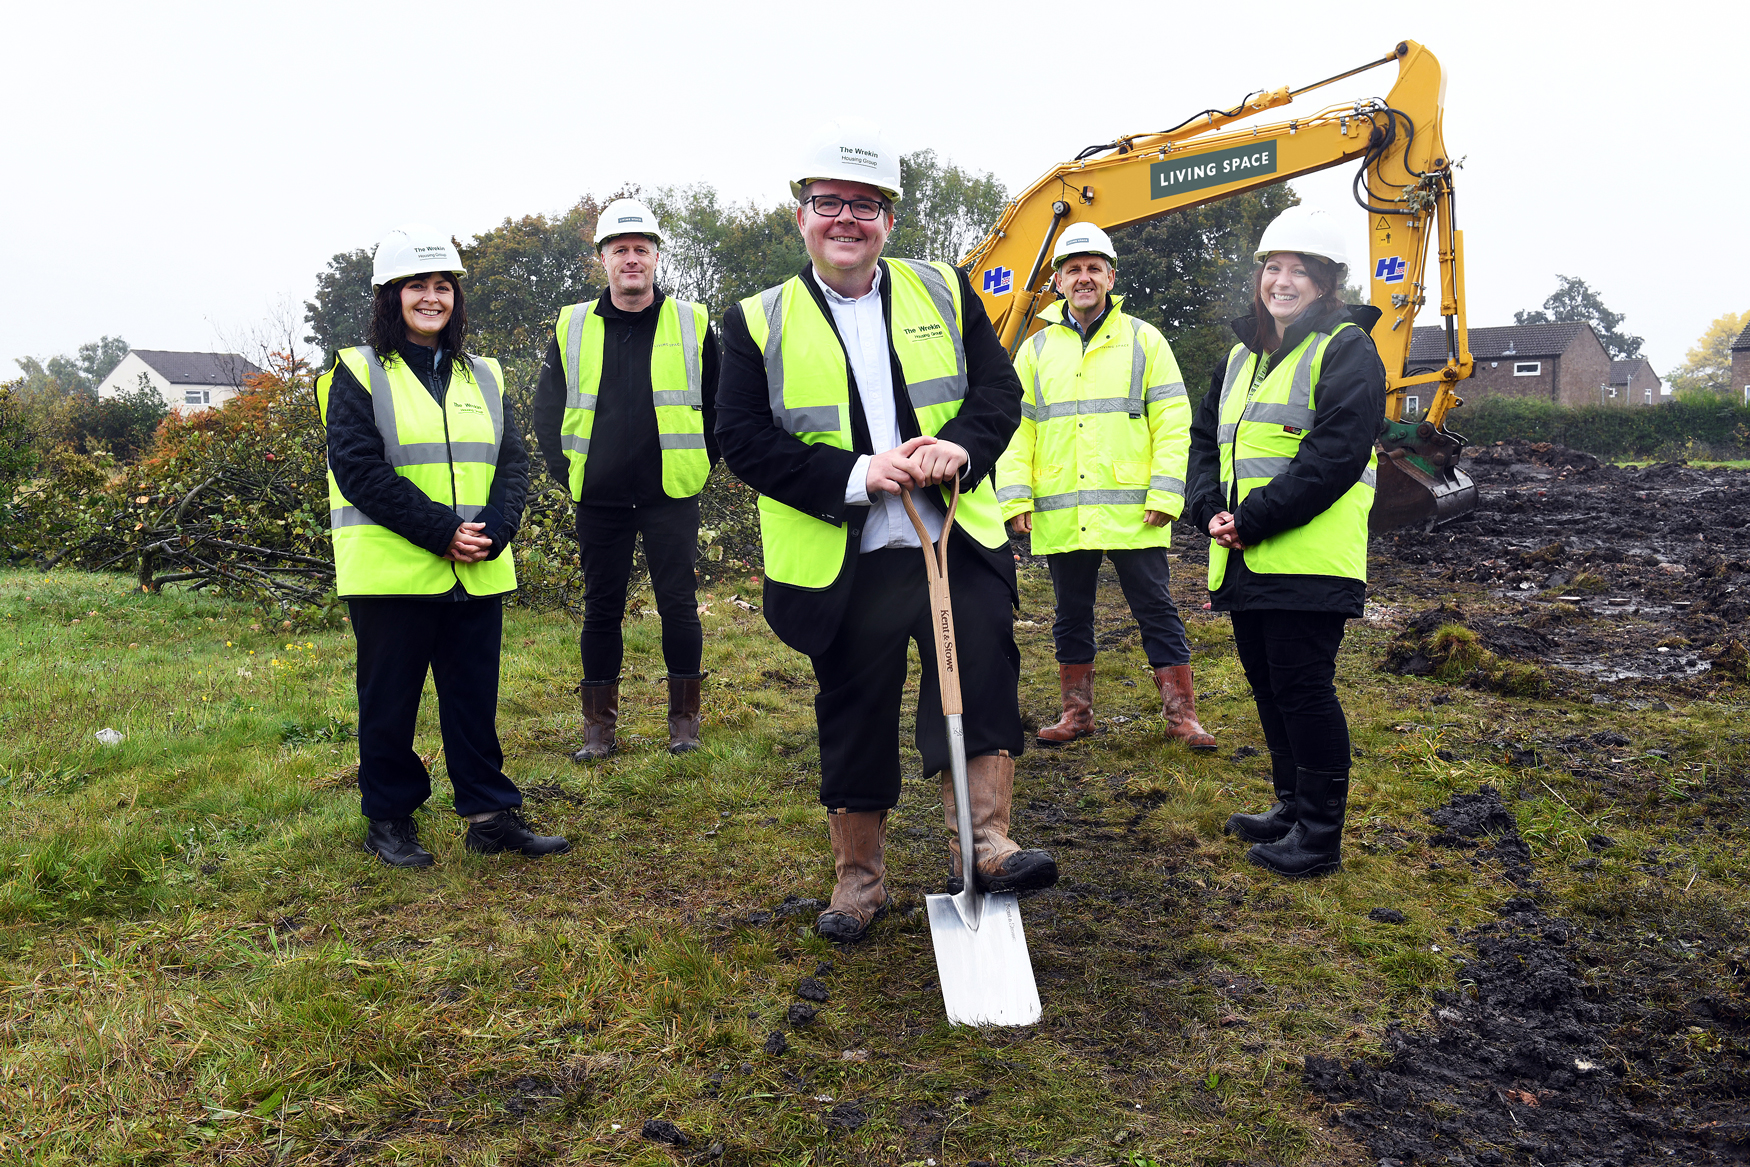 Construction commences to deliver 38 affordable homes on a brownfield site in Telford